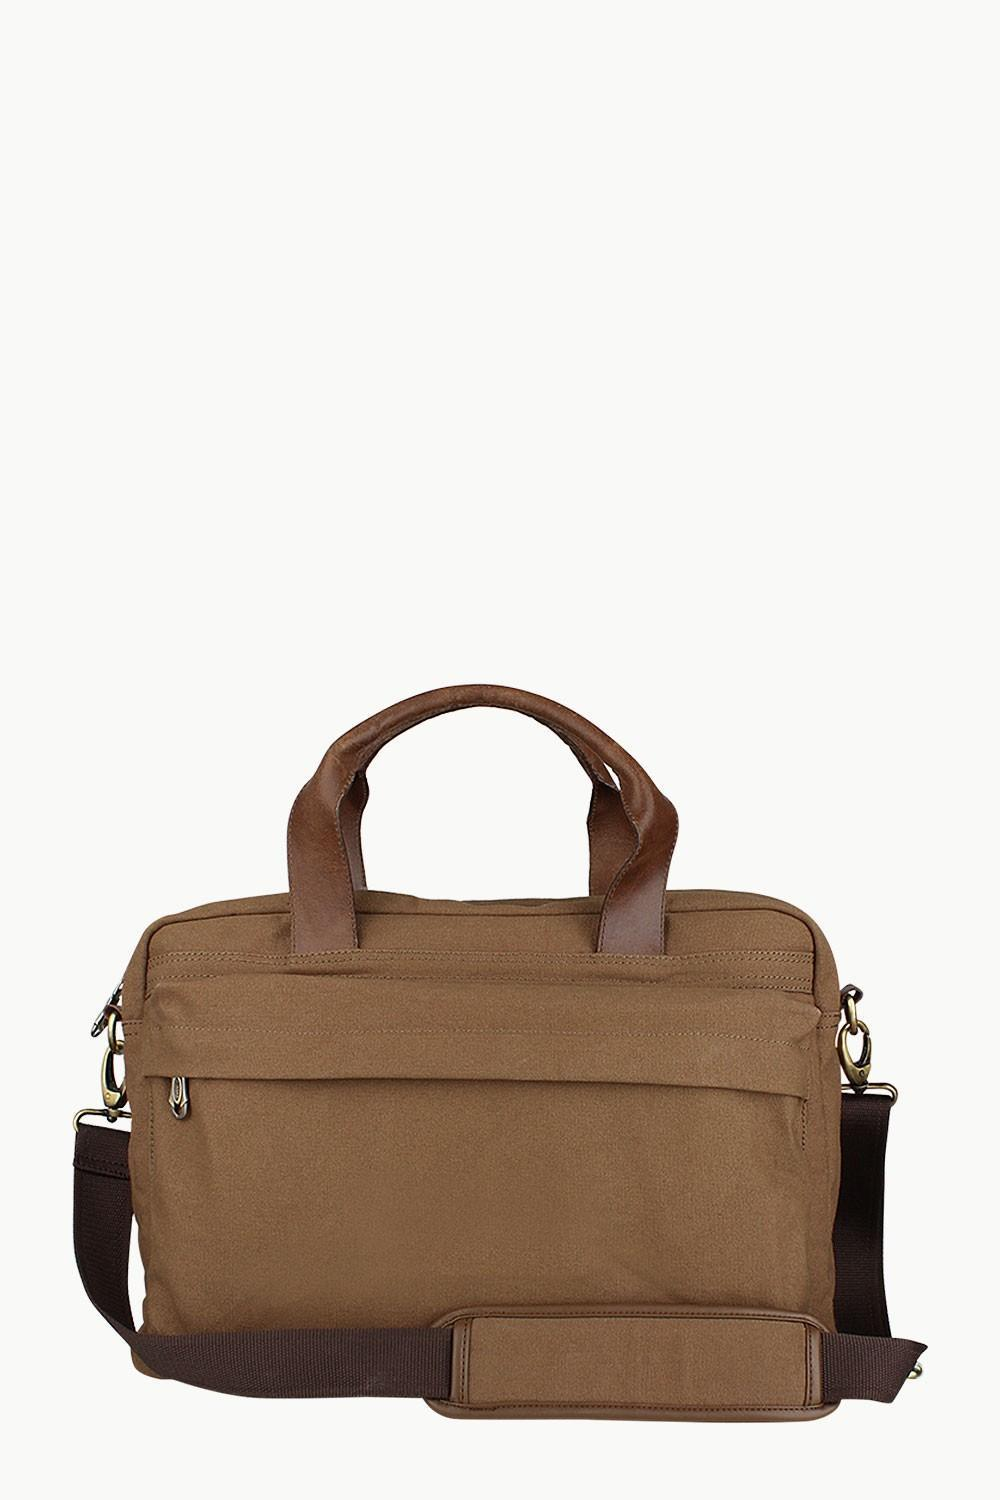 Buy Online Genuine Leather with DyedChocolate Brown Canvas Men s ... 606f55ea37e40